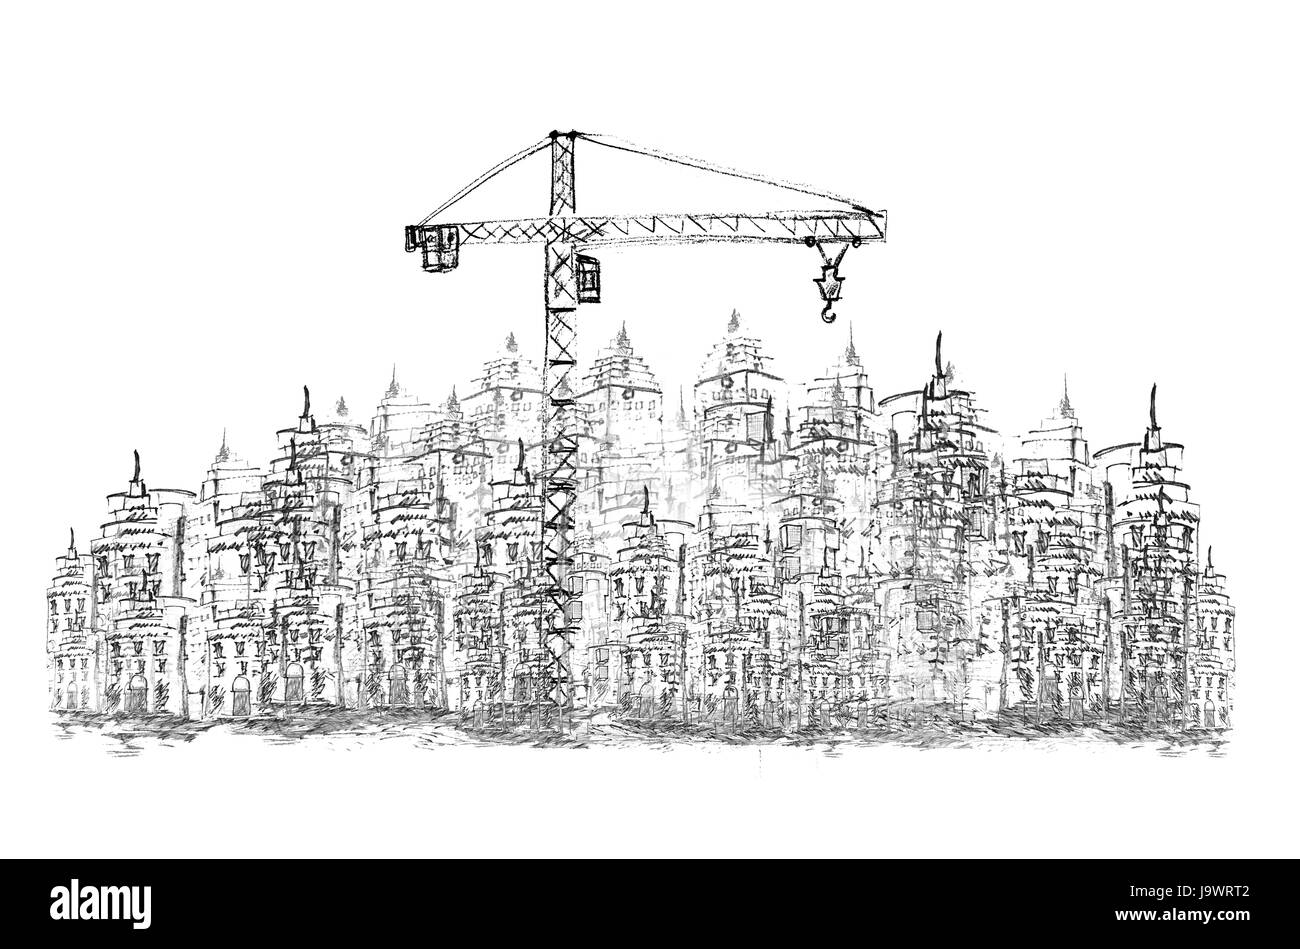 sketching of construction project - Stock Image